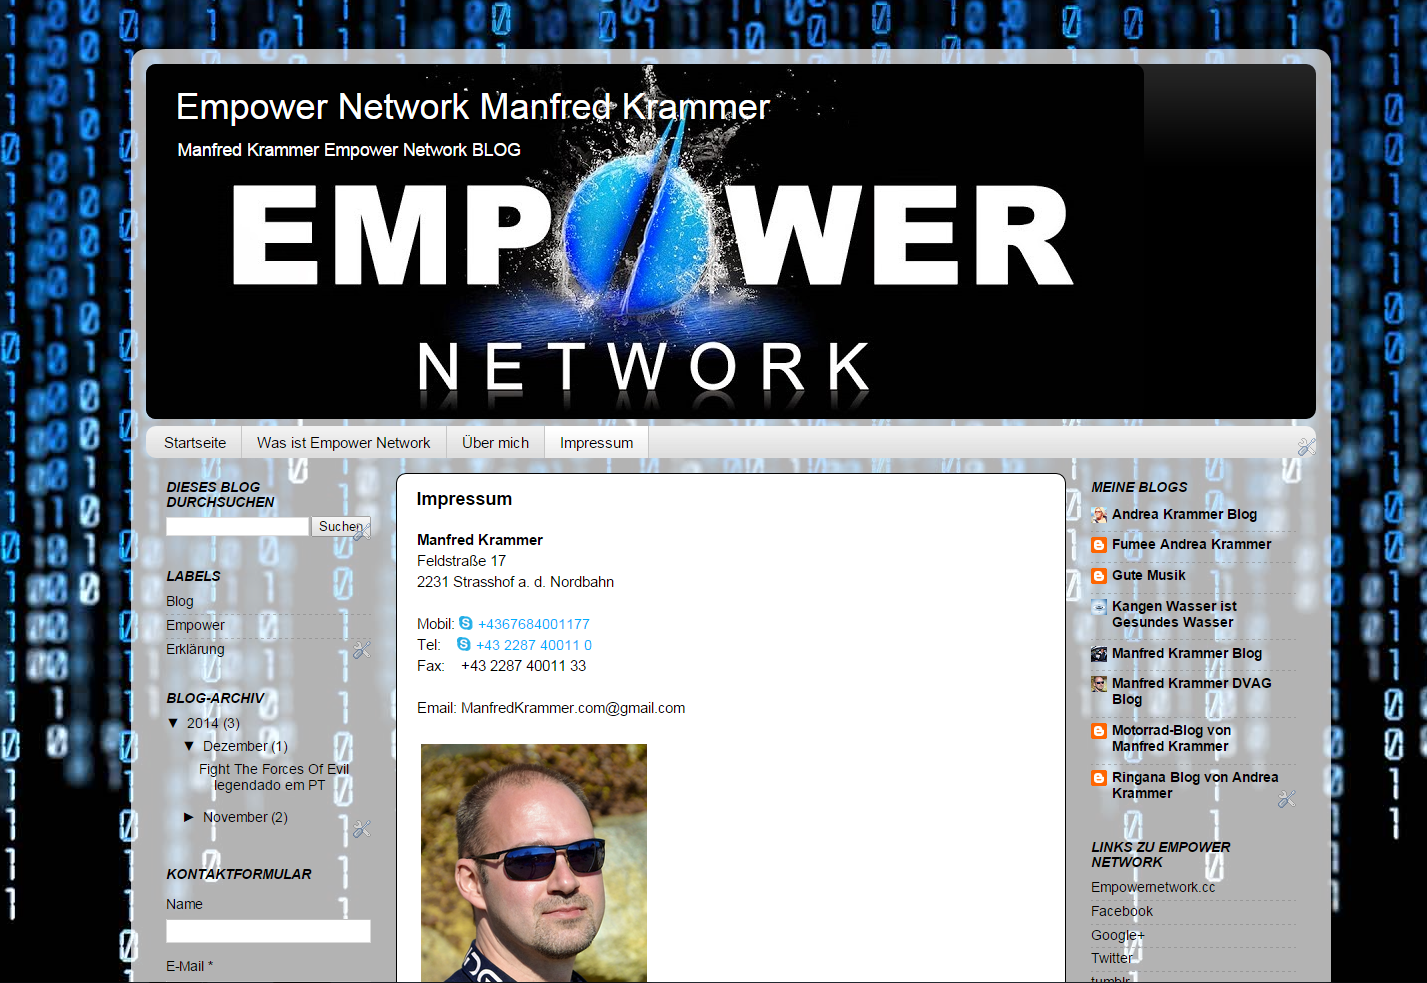 Empower Network Blog von Manfred Krammer